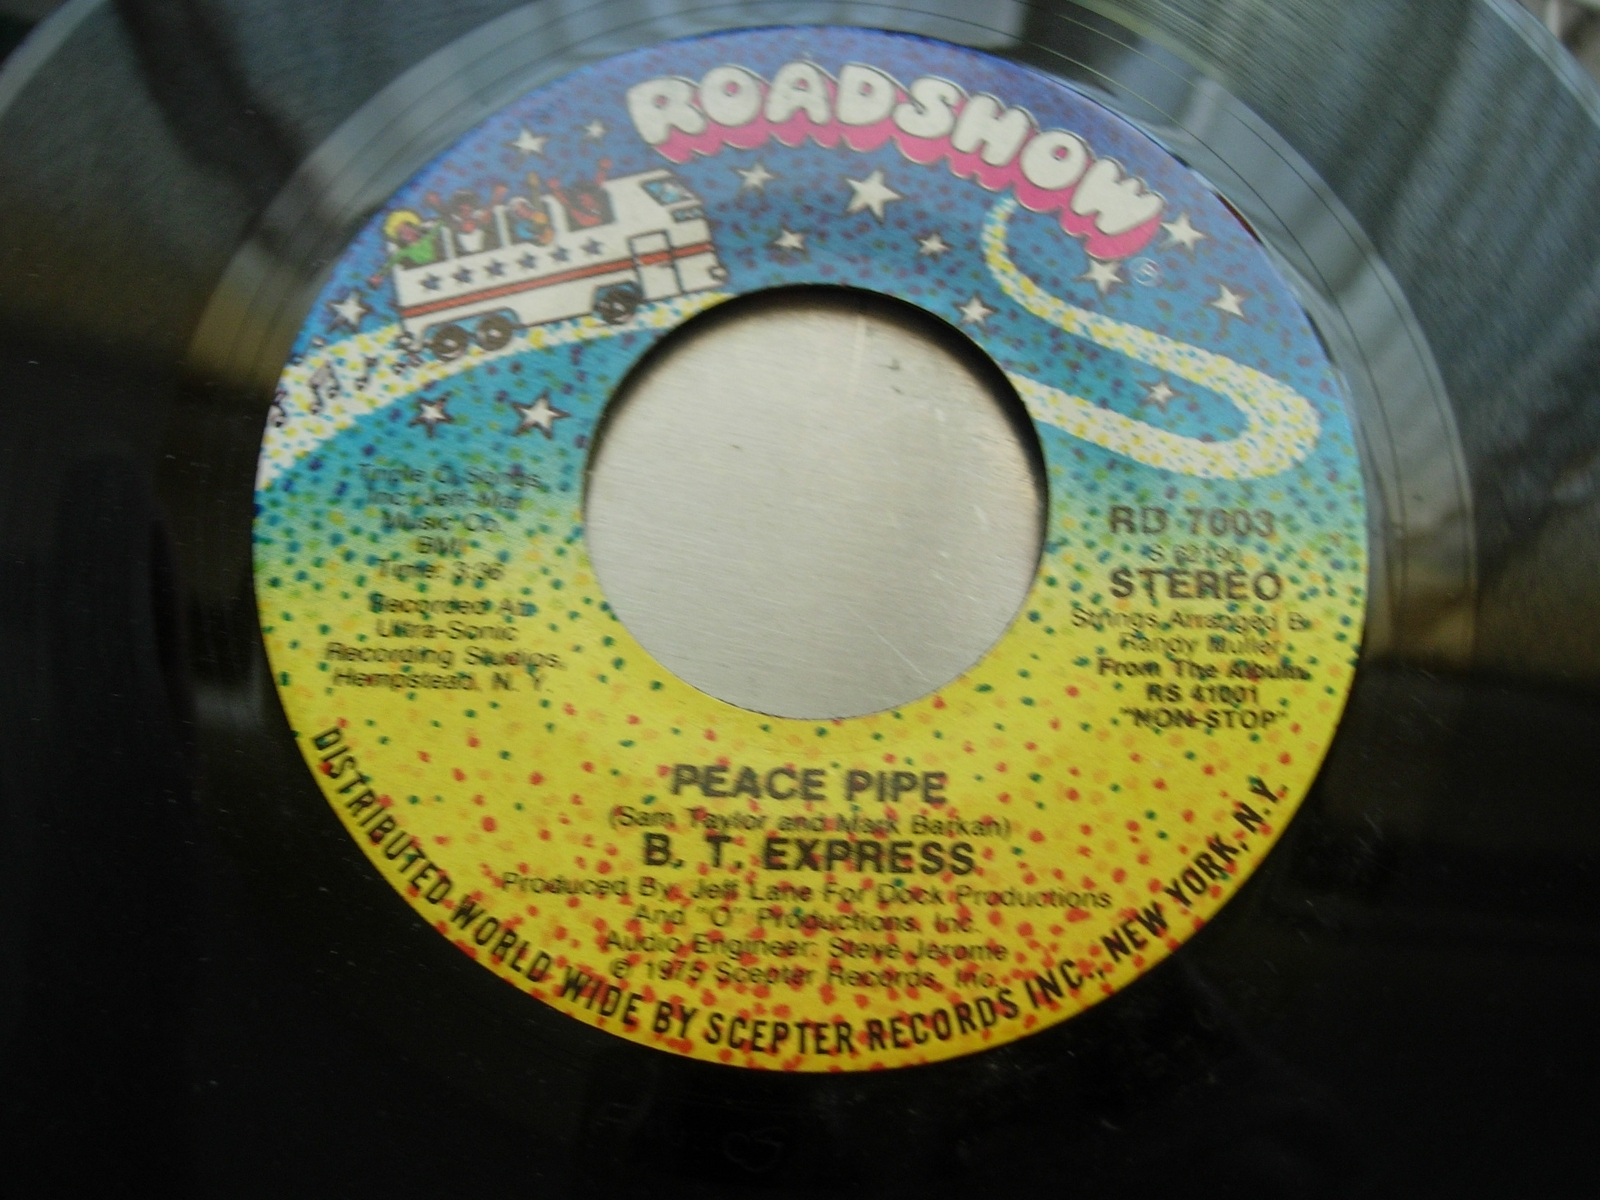 B. T. EXPRESS Peace Pipe / Give It What You Got - Roadshow Records RD 7003